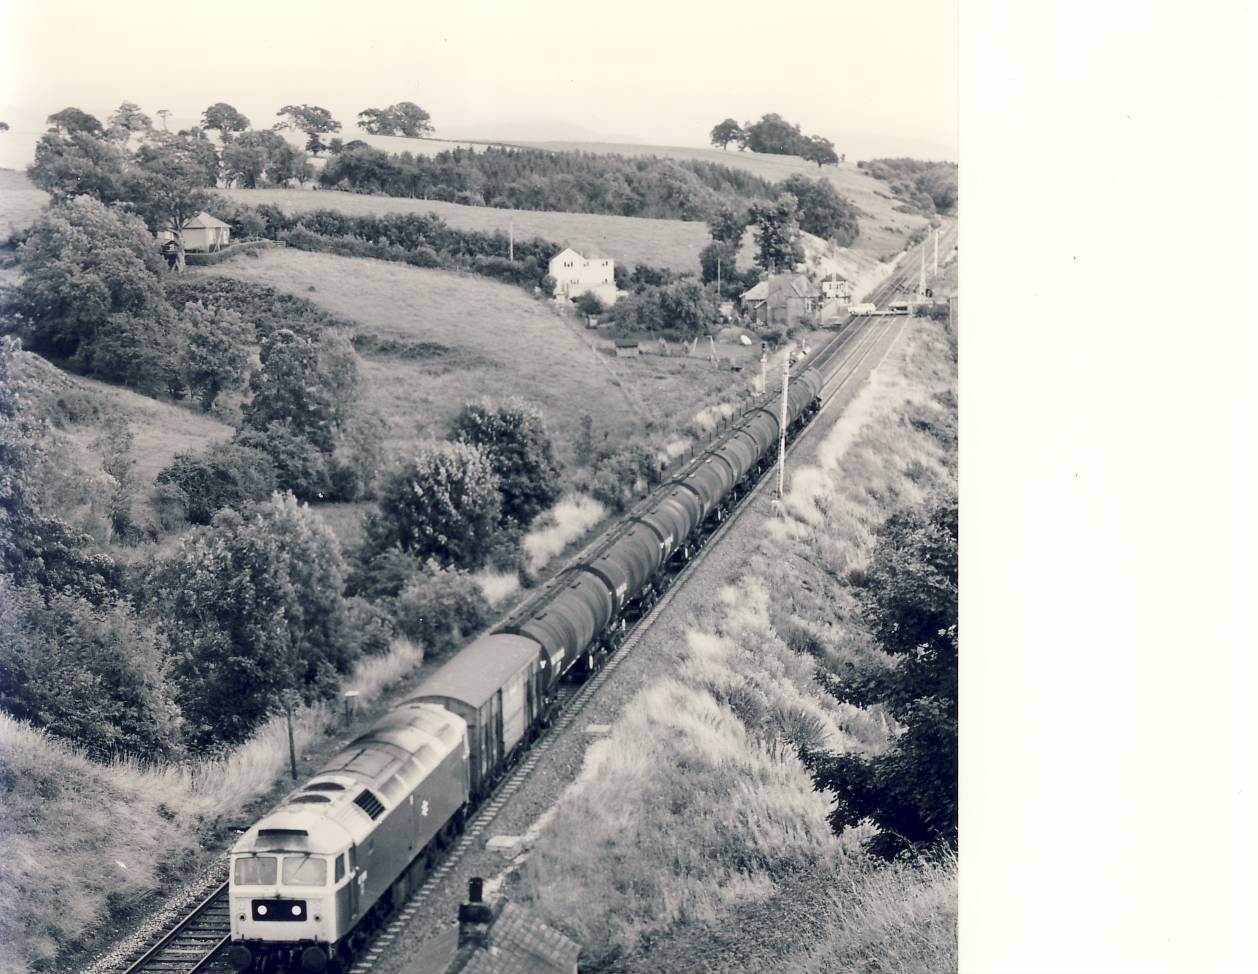 24th August 1982 47.296 Train Photo refSC141 Measure approx 6.5 x 8.5 inches / 16cm x 21cm - black and white photographic print pre-owned item in very good condition.